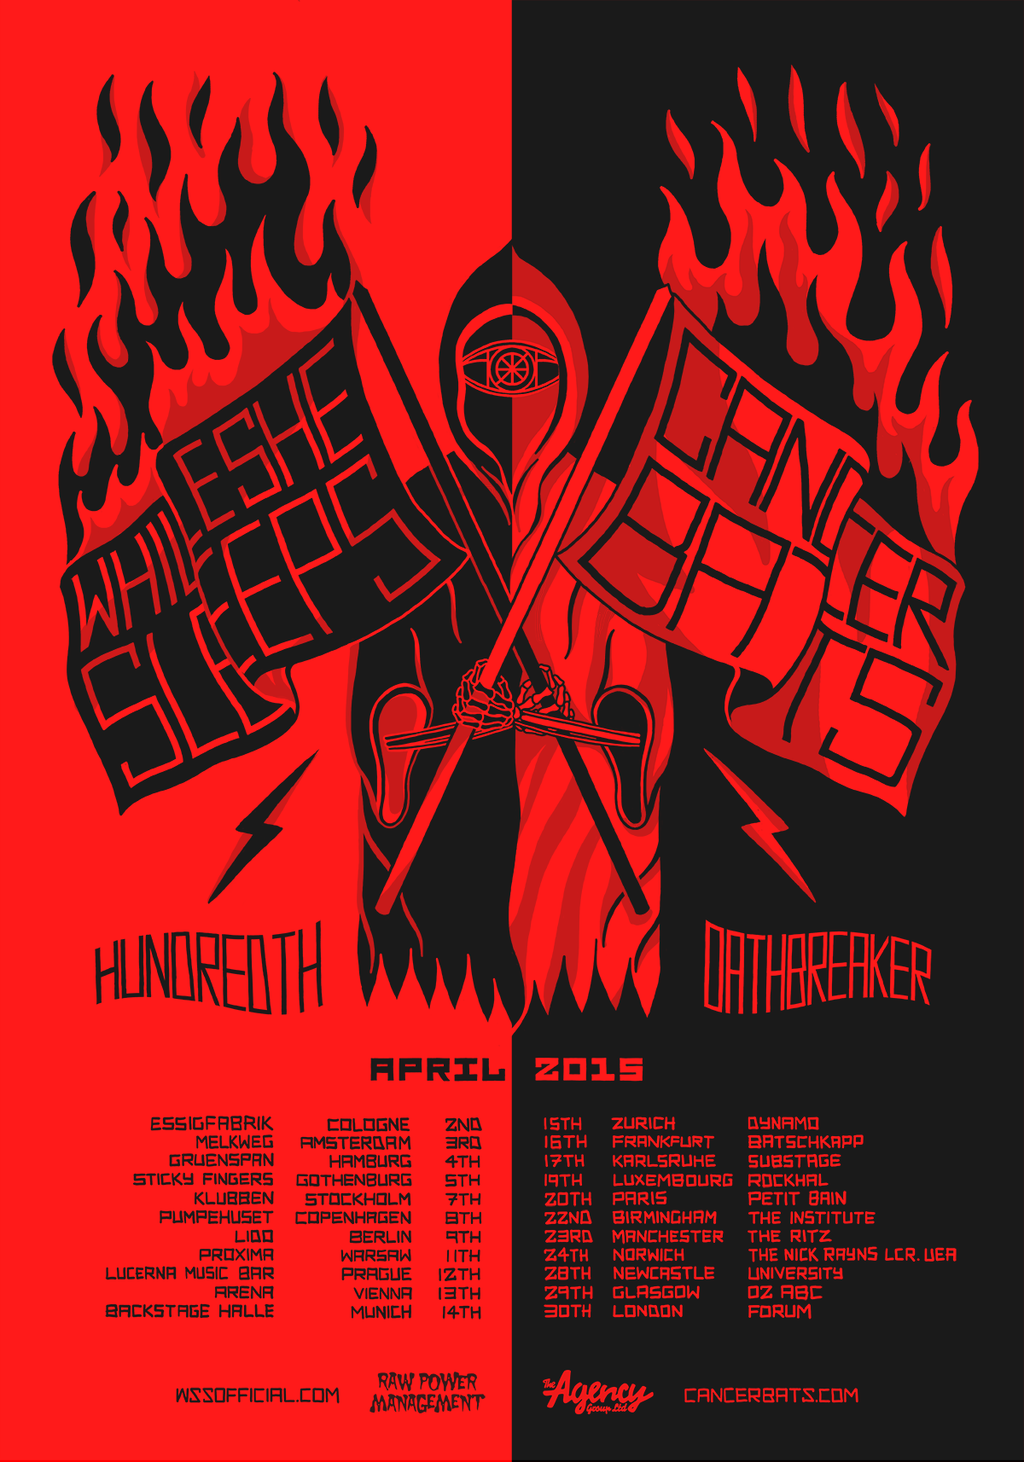 Wss Berlin Wss Cancer Bats Hundreth Oathbraker Bands Music